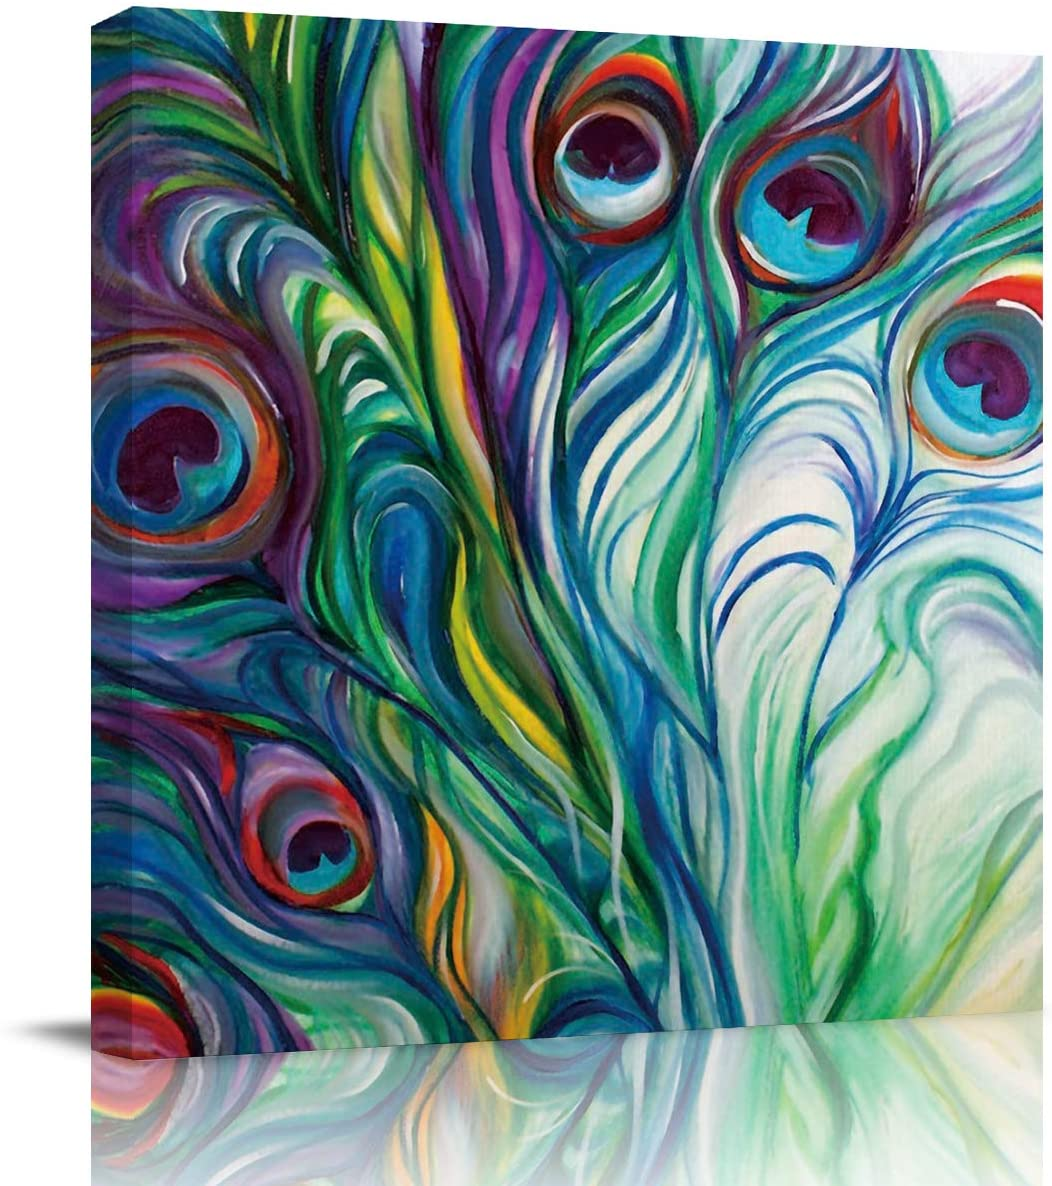 Square Canvas Wall Prints Art for Living Room Bedroom 12x12 inch - Abstract Ink Peacock Feather Poster Artwork Picture Painting Ready to Hang for Home Bathroom Kitchen Office Decoration